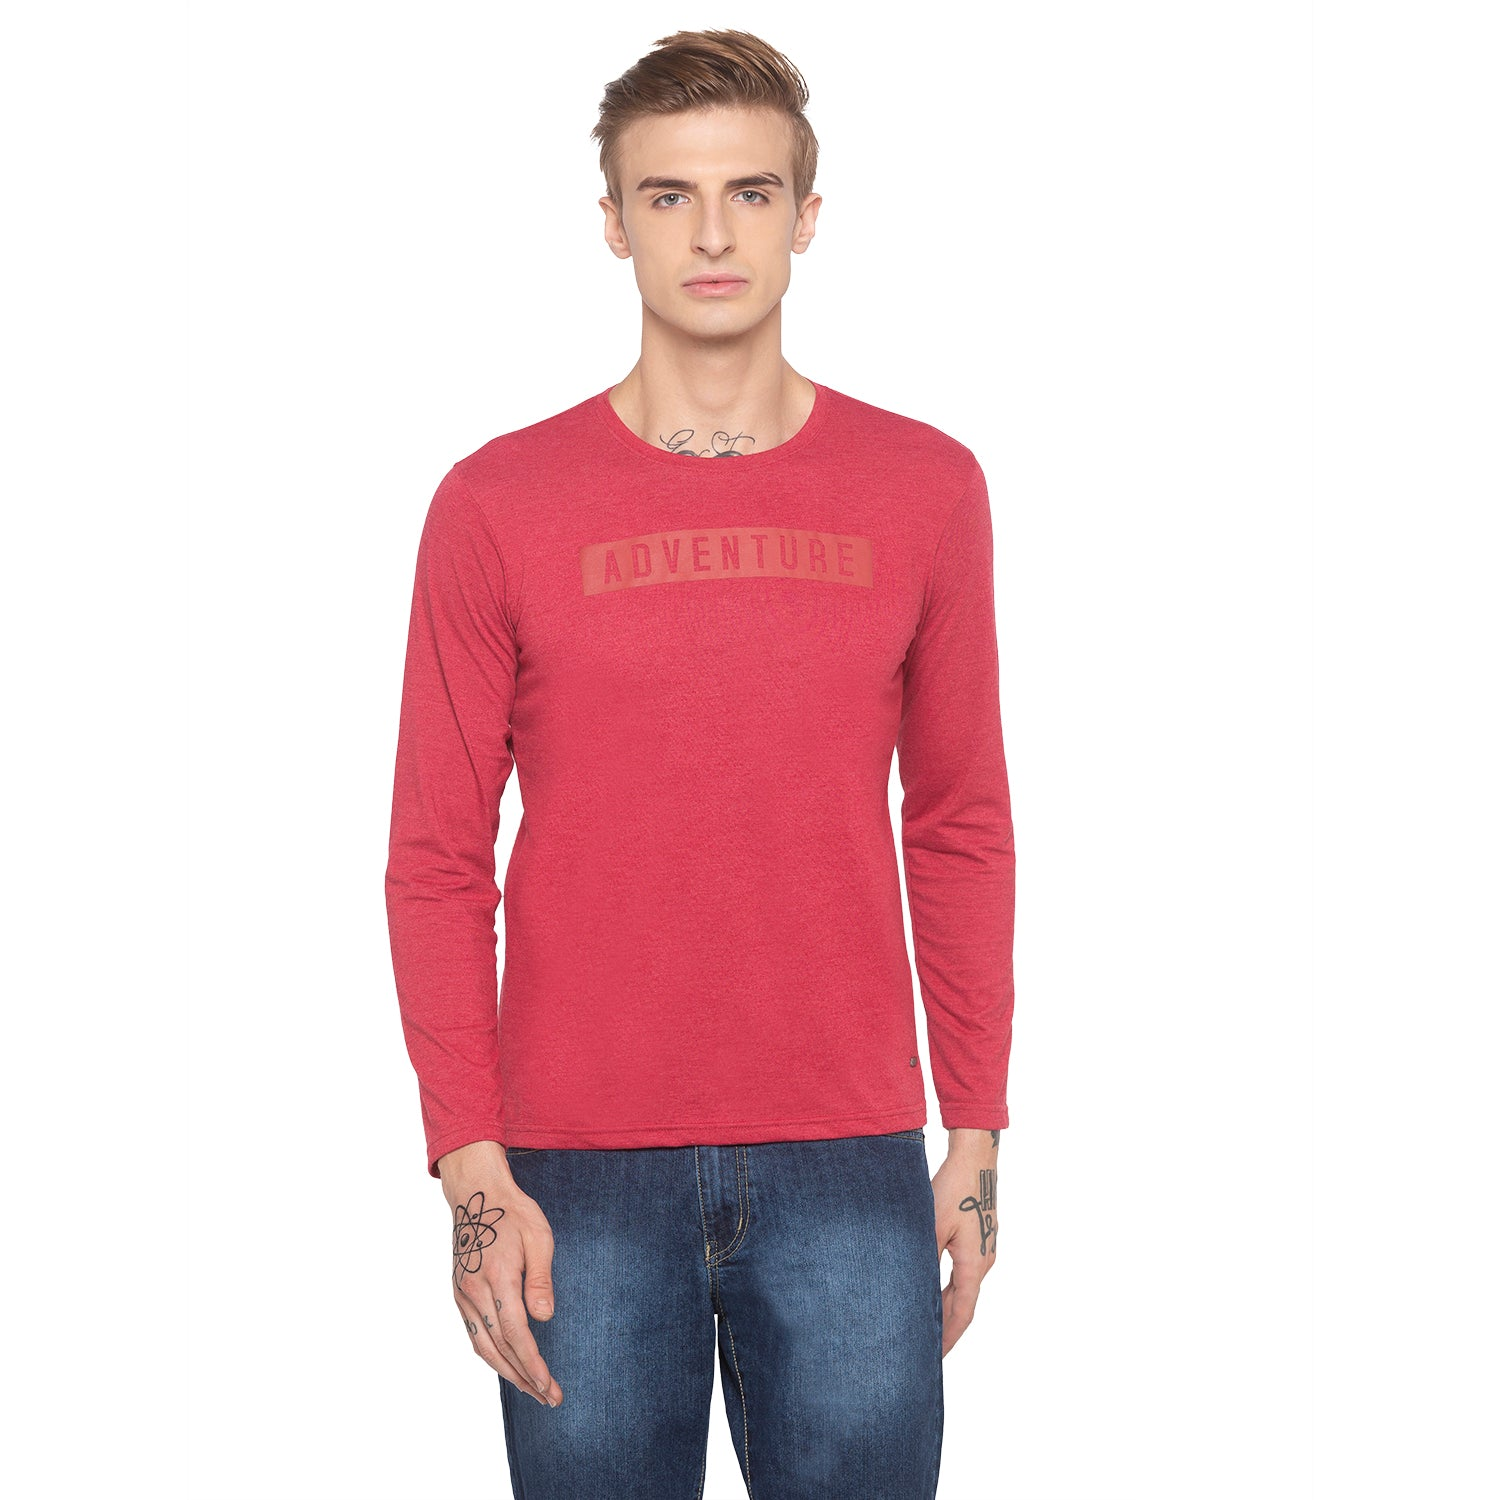 Adventure Full Sleeve Red T-shirt-1